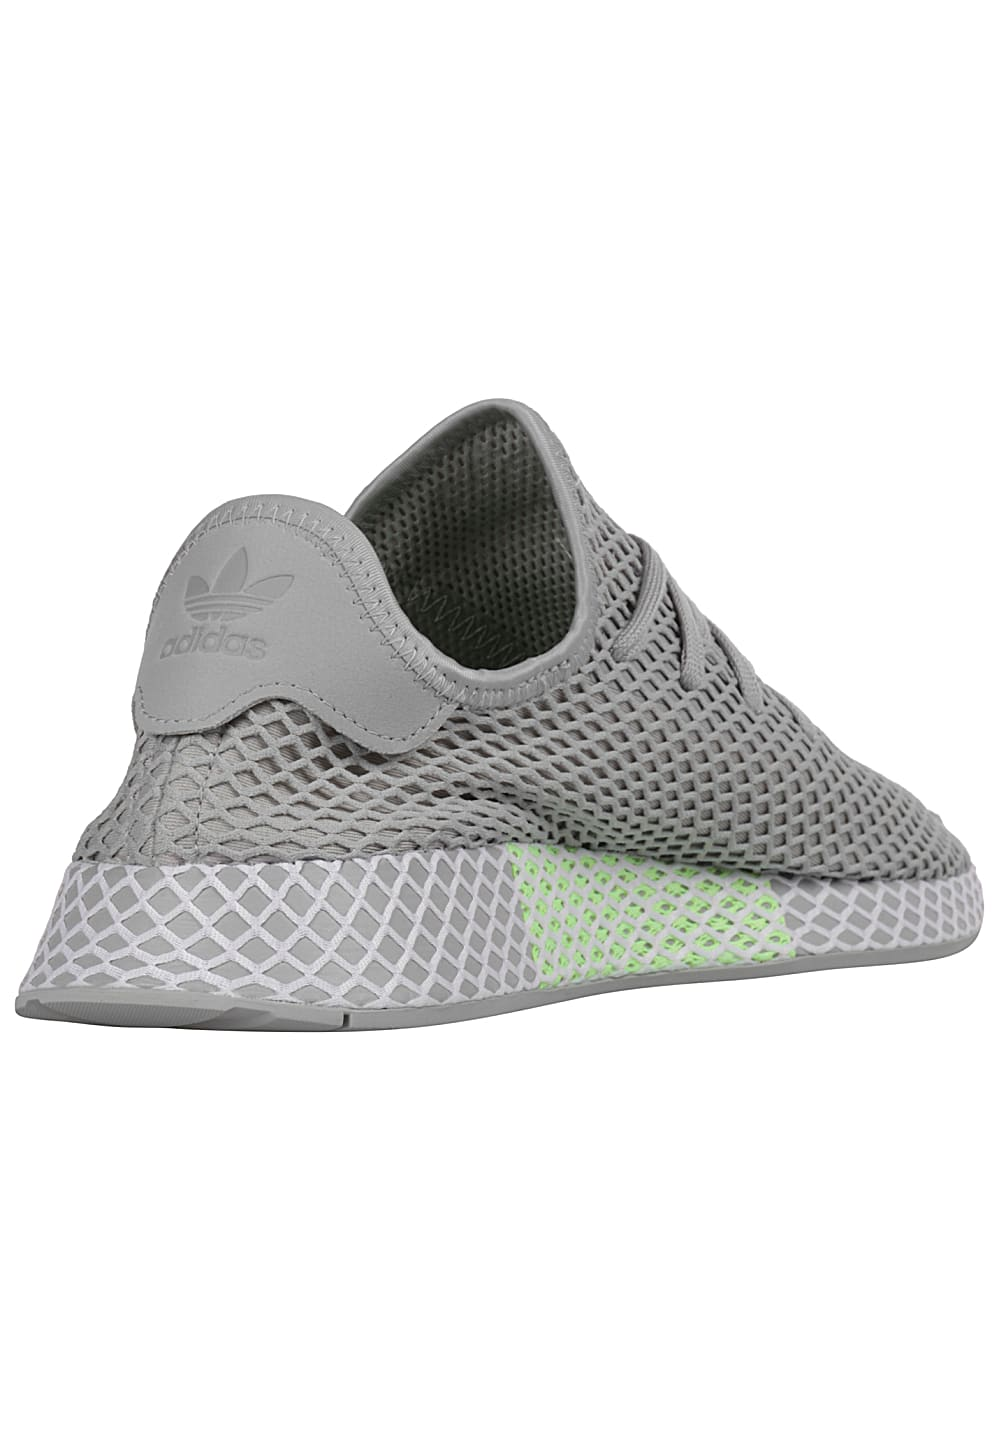 buy popular eed75 de73f Next. ADIDAS ORIGINALS. Deerupt Runner - Sneakers for Men. €99.95